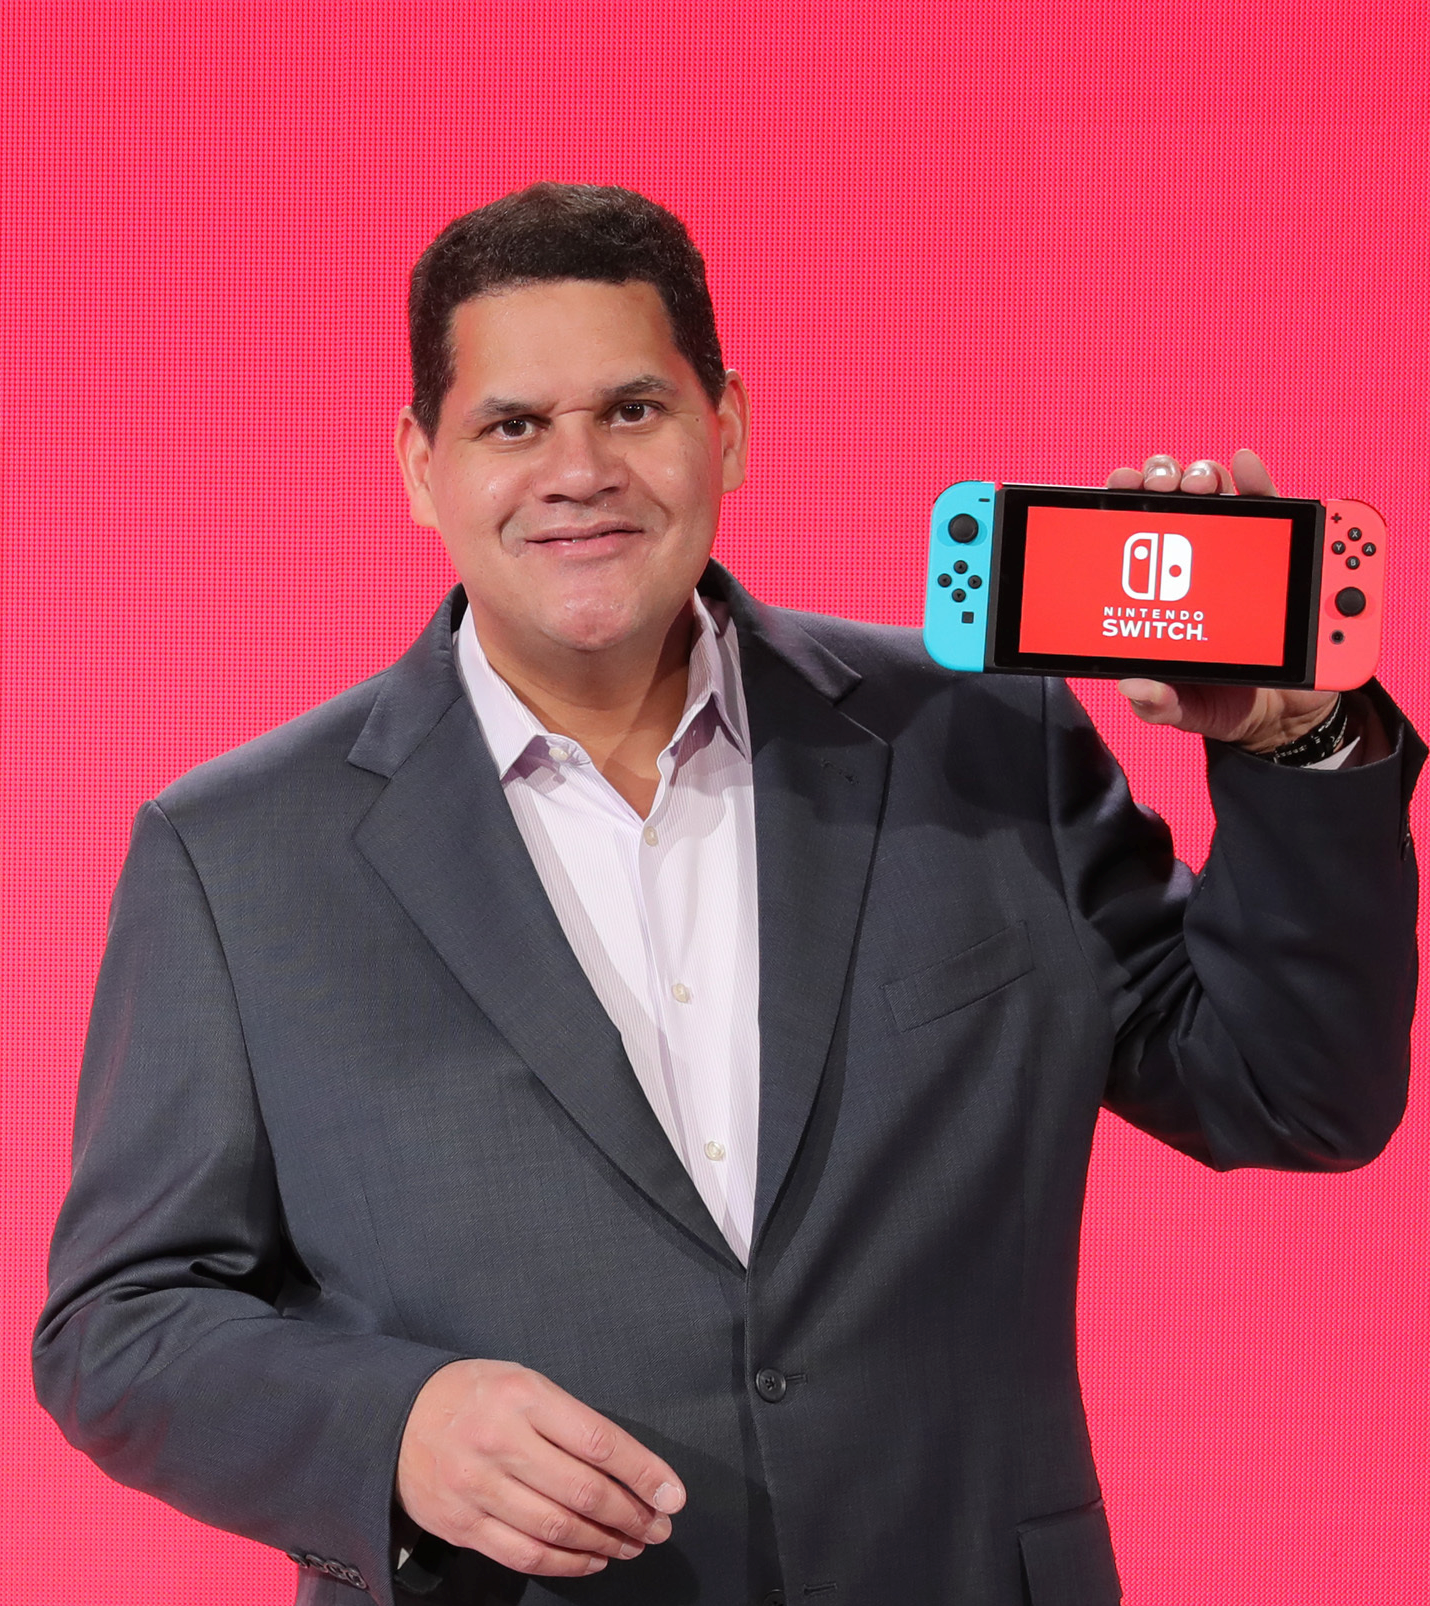 Left Joy-Con Issue Fixed After